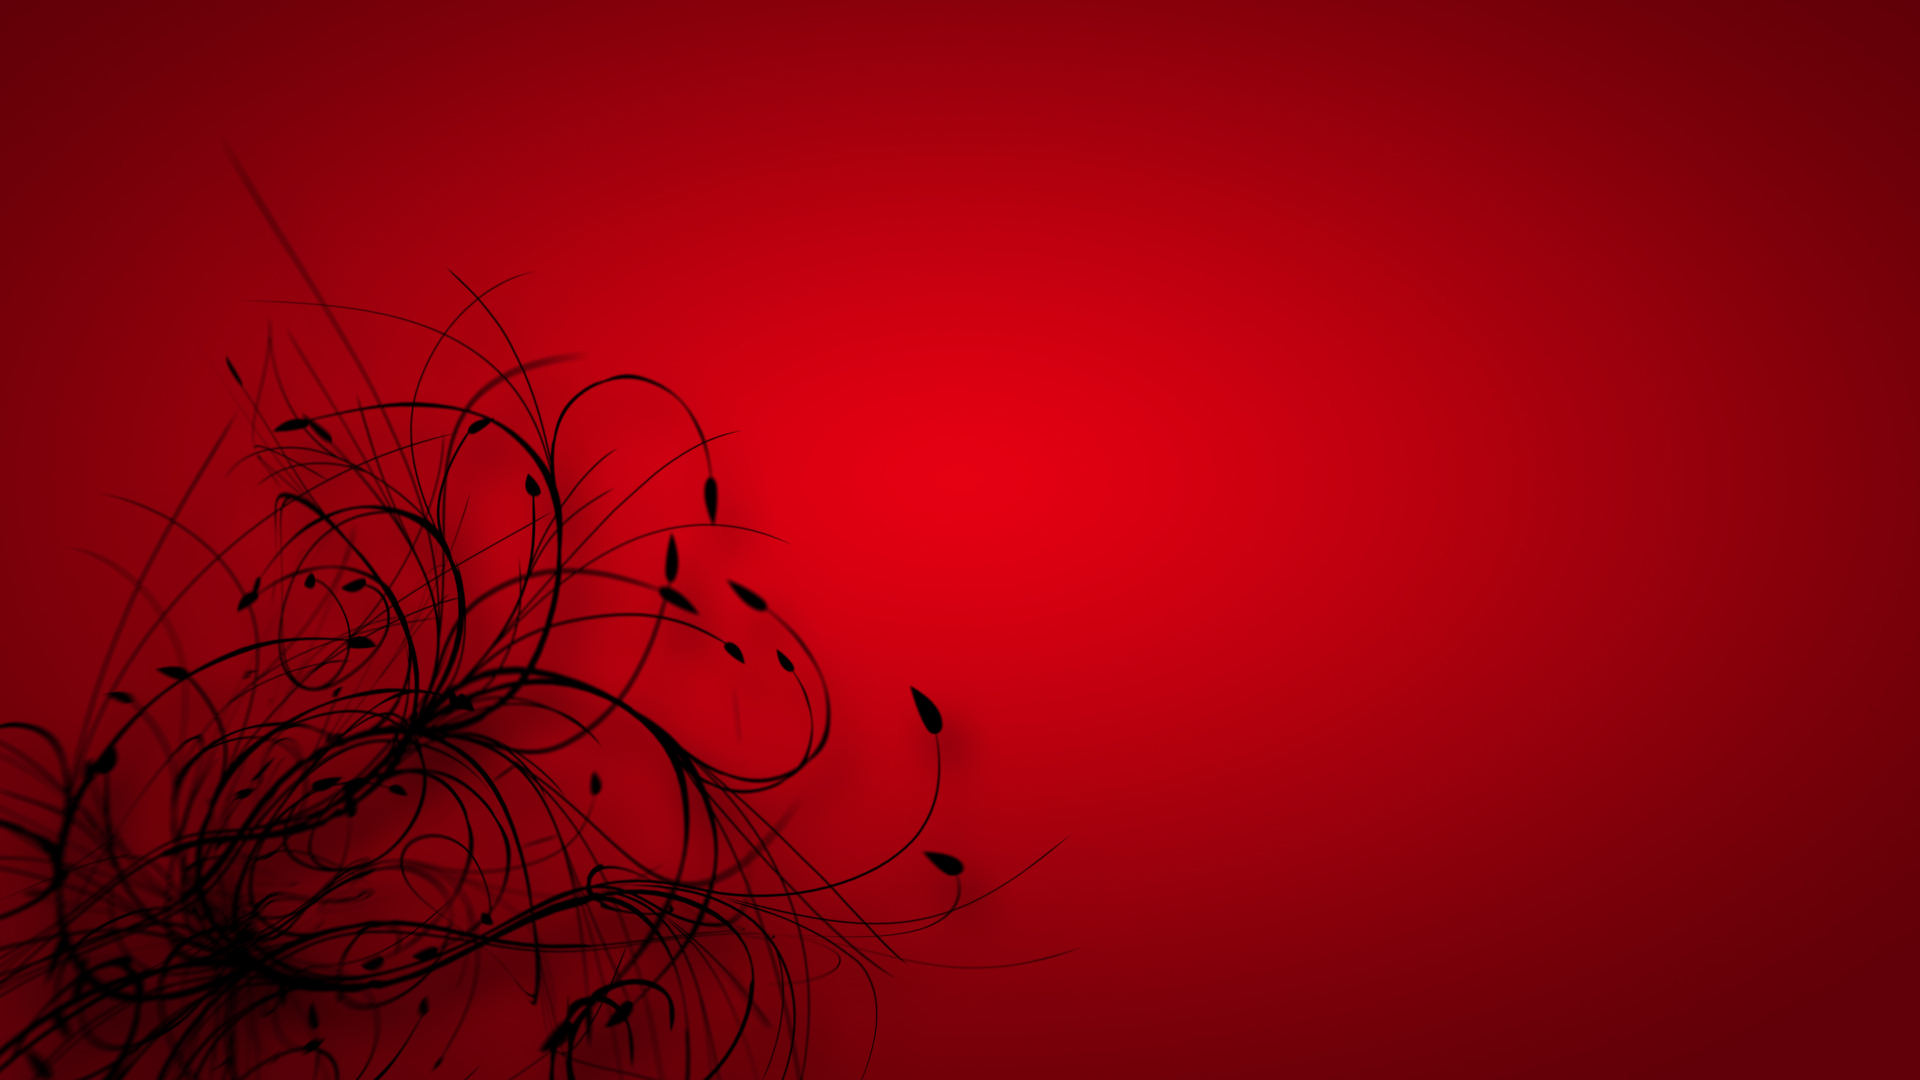 Wallpaper In Red